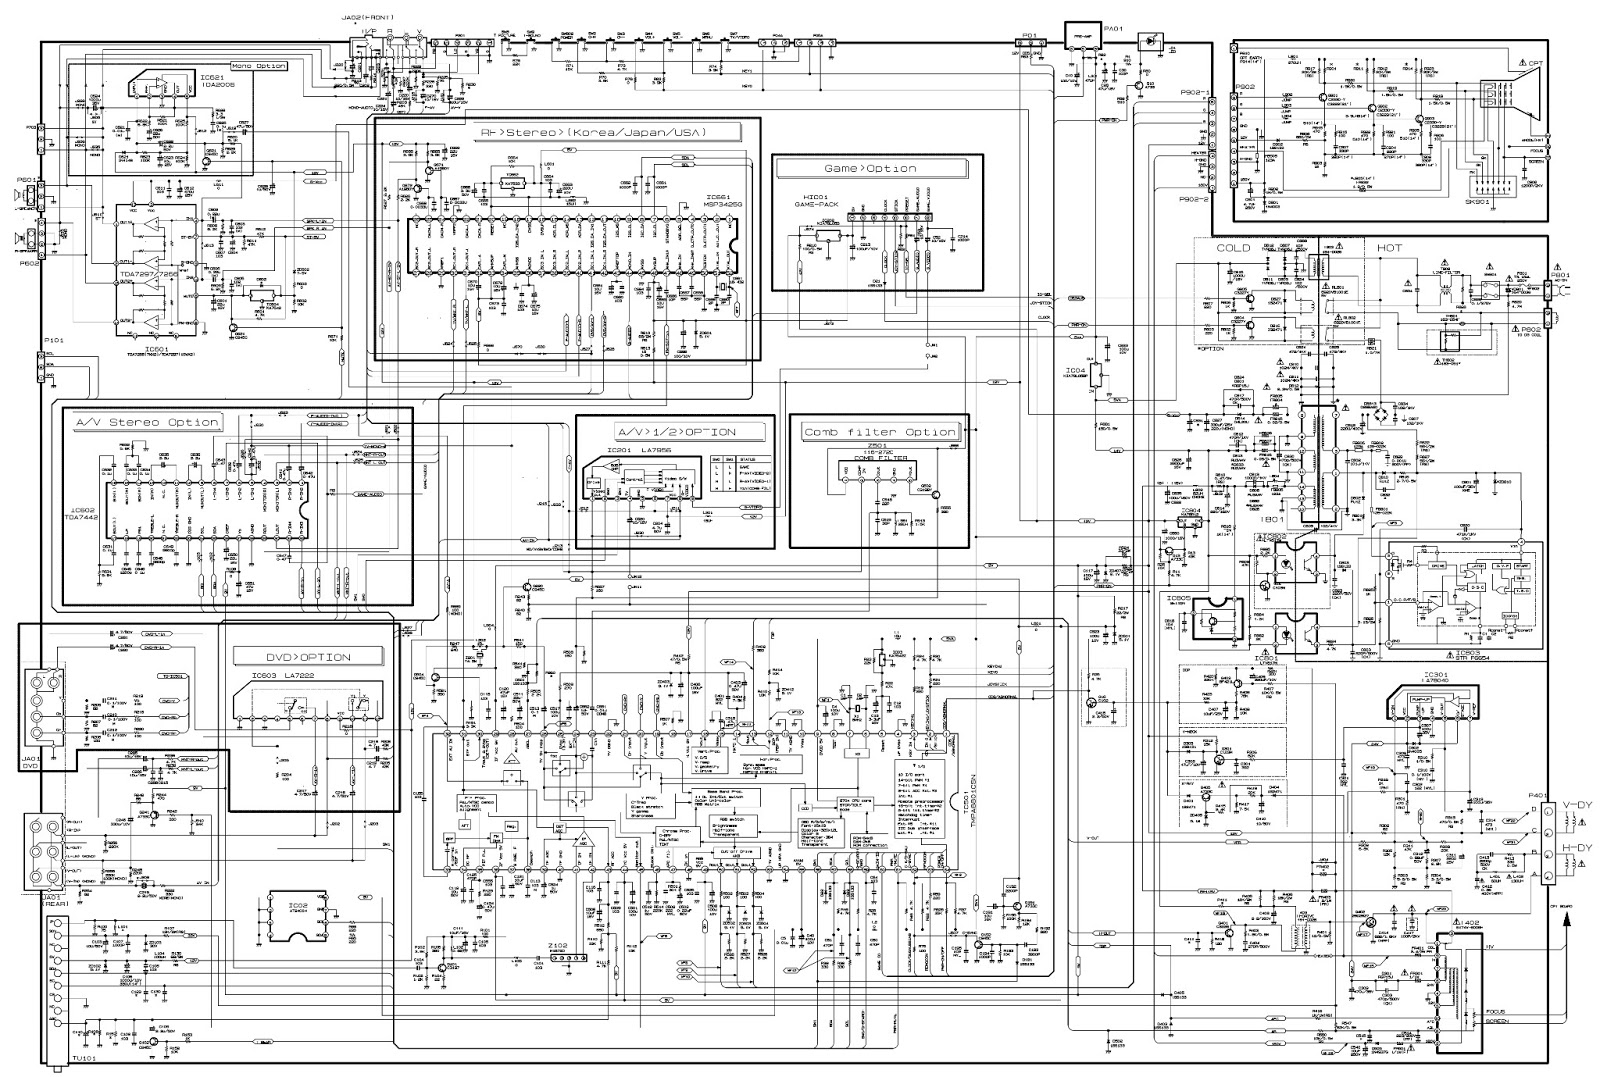 Lg Rp21fd10 Schematic Diagram Used Ics Tda2006 Tda7297 7296 Single Door Doorbell Wiring Tda7442 La7222 At24c04 Tmpa8801csn La78040 Str F6654 Power Switching